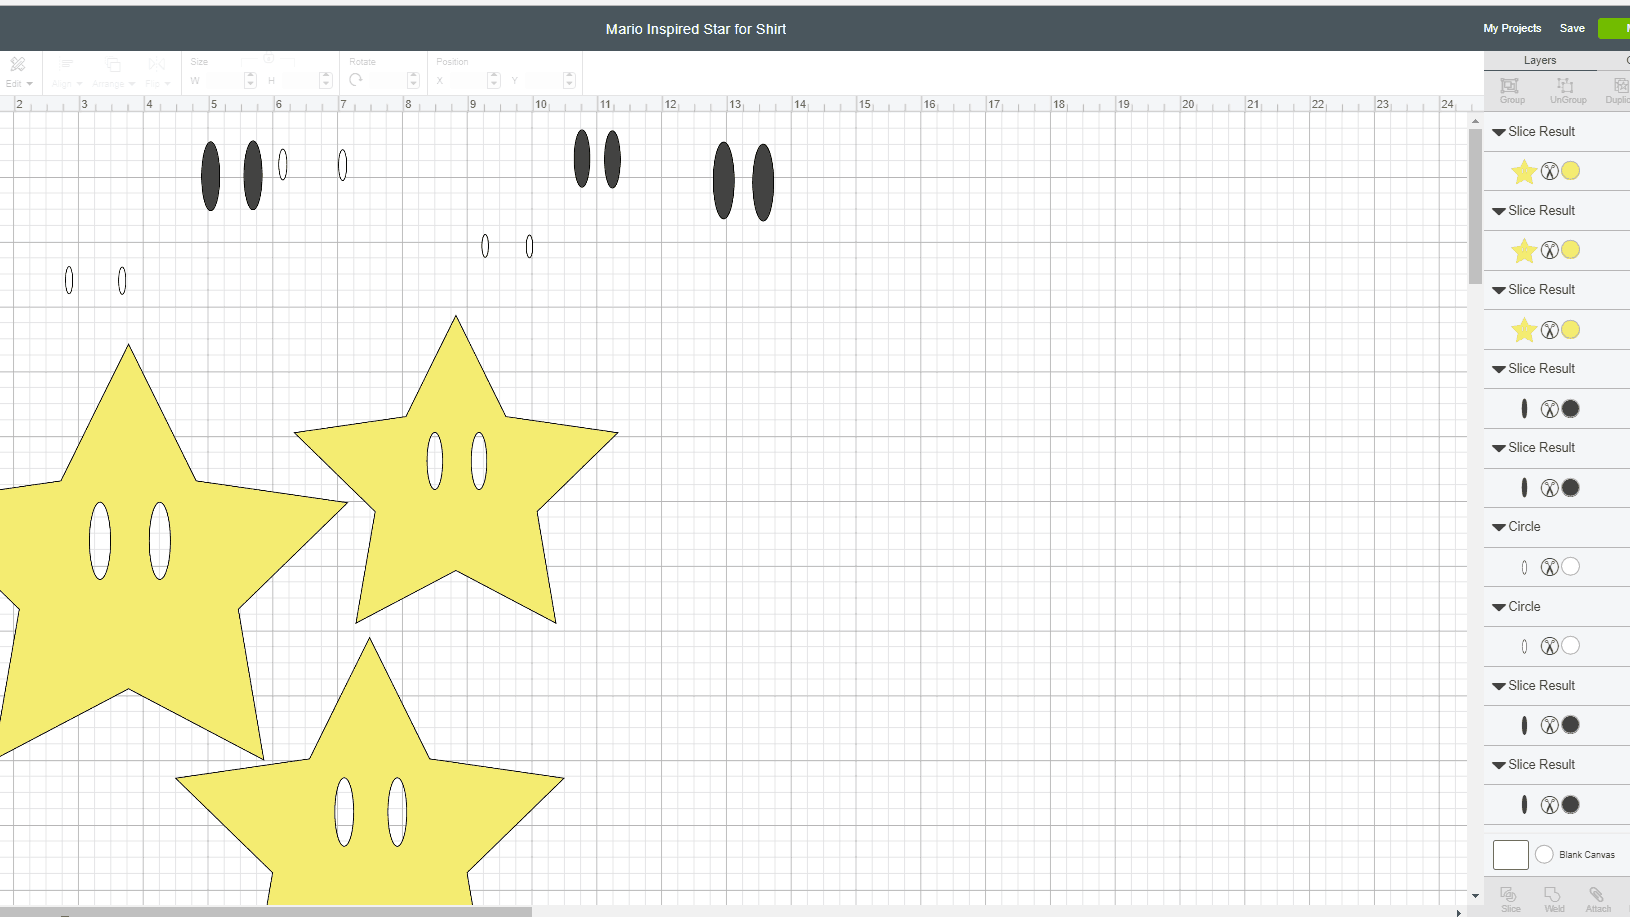 Free Cricut Cut file for a Mario Invincible Star, aka the Super Star or Starmen.